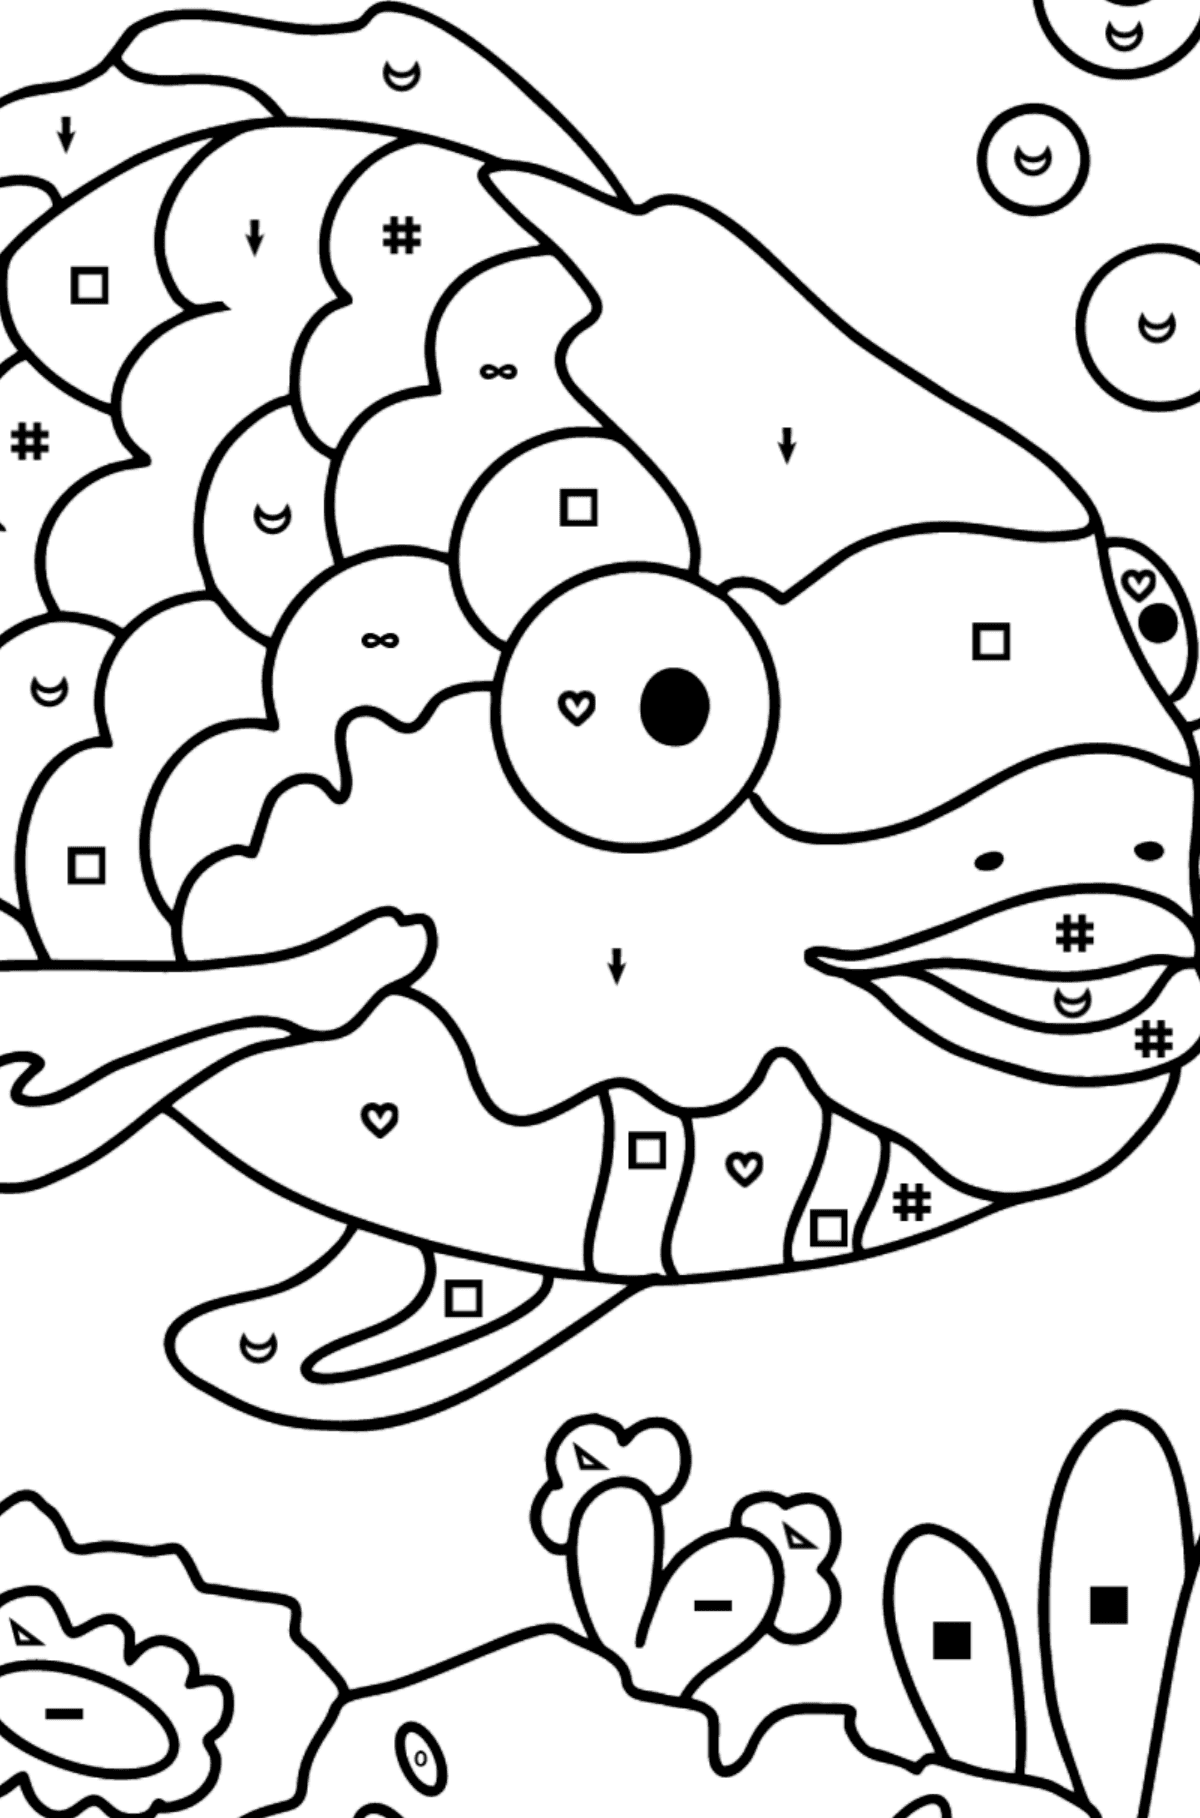 Coloring Page - An Exotic or Rainbow fish - Coloring by Symbols and Geometric Shapes for Kids